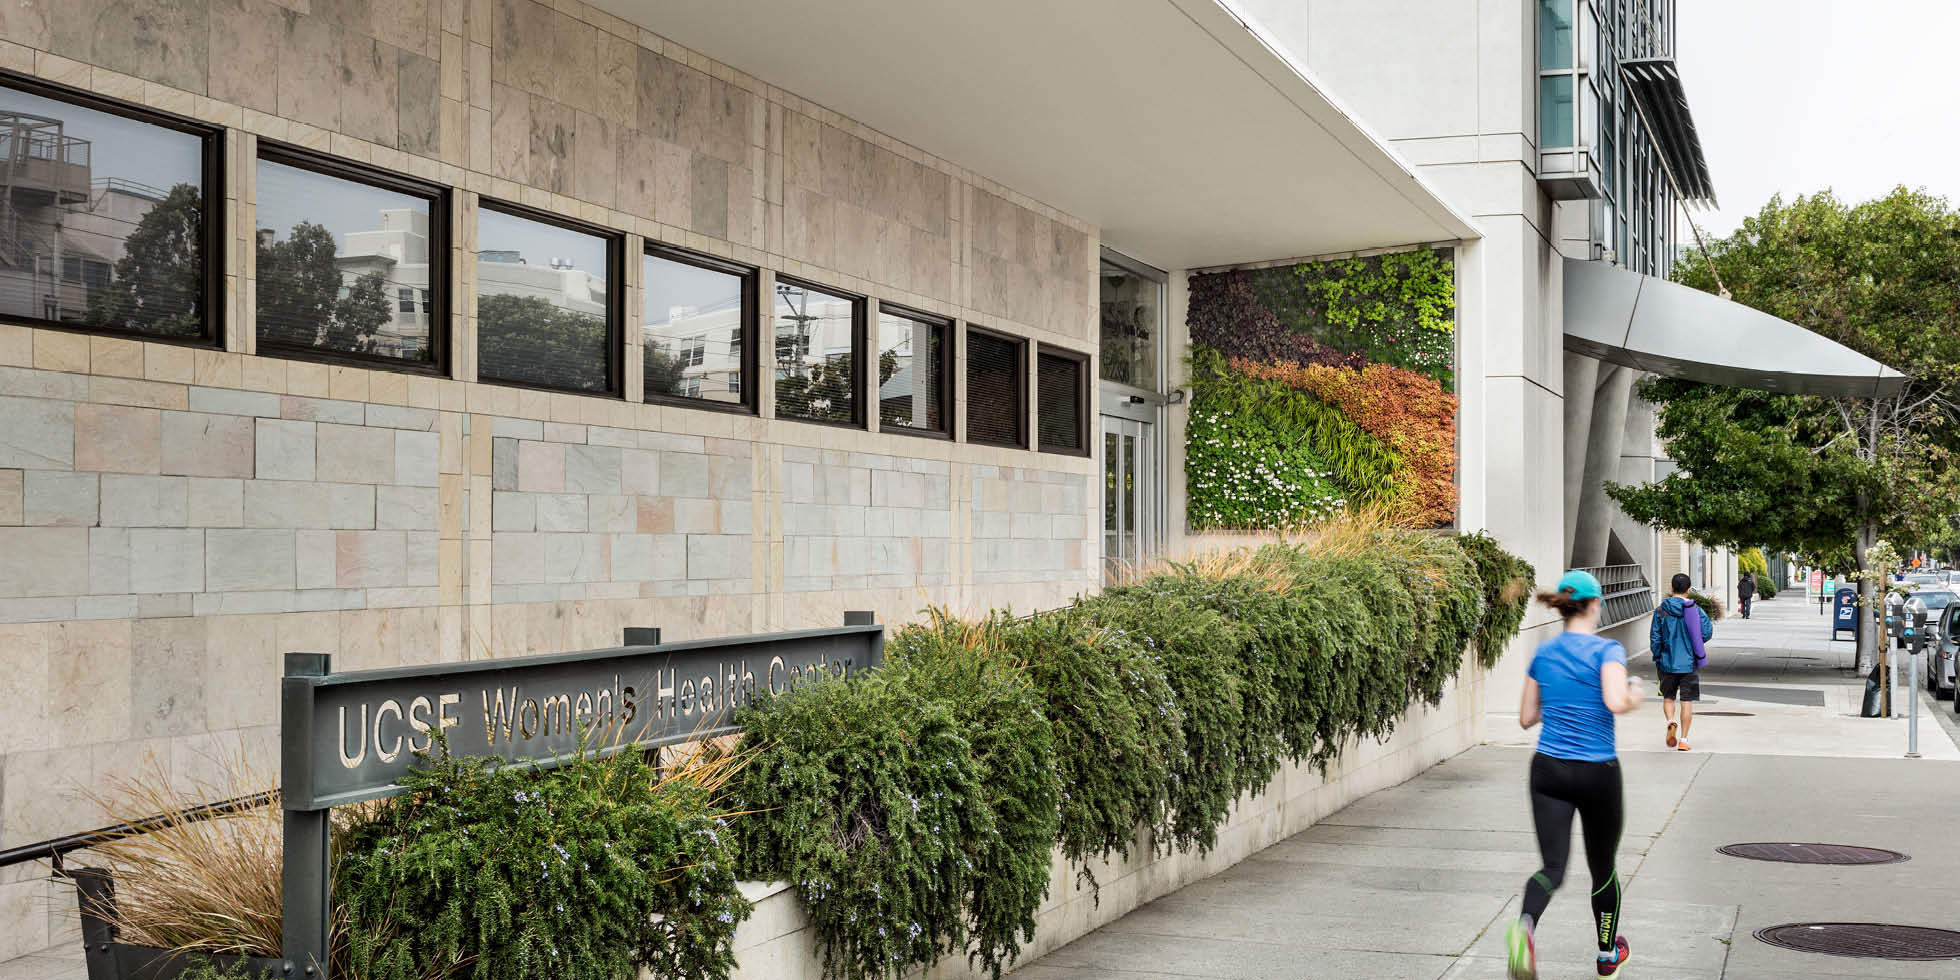 UCSF Women's Health Center Living Wall by Habitat Horticulture - View 2